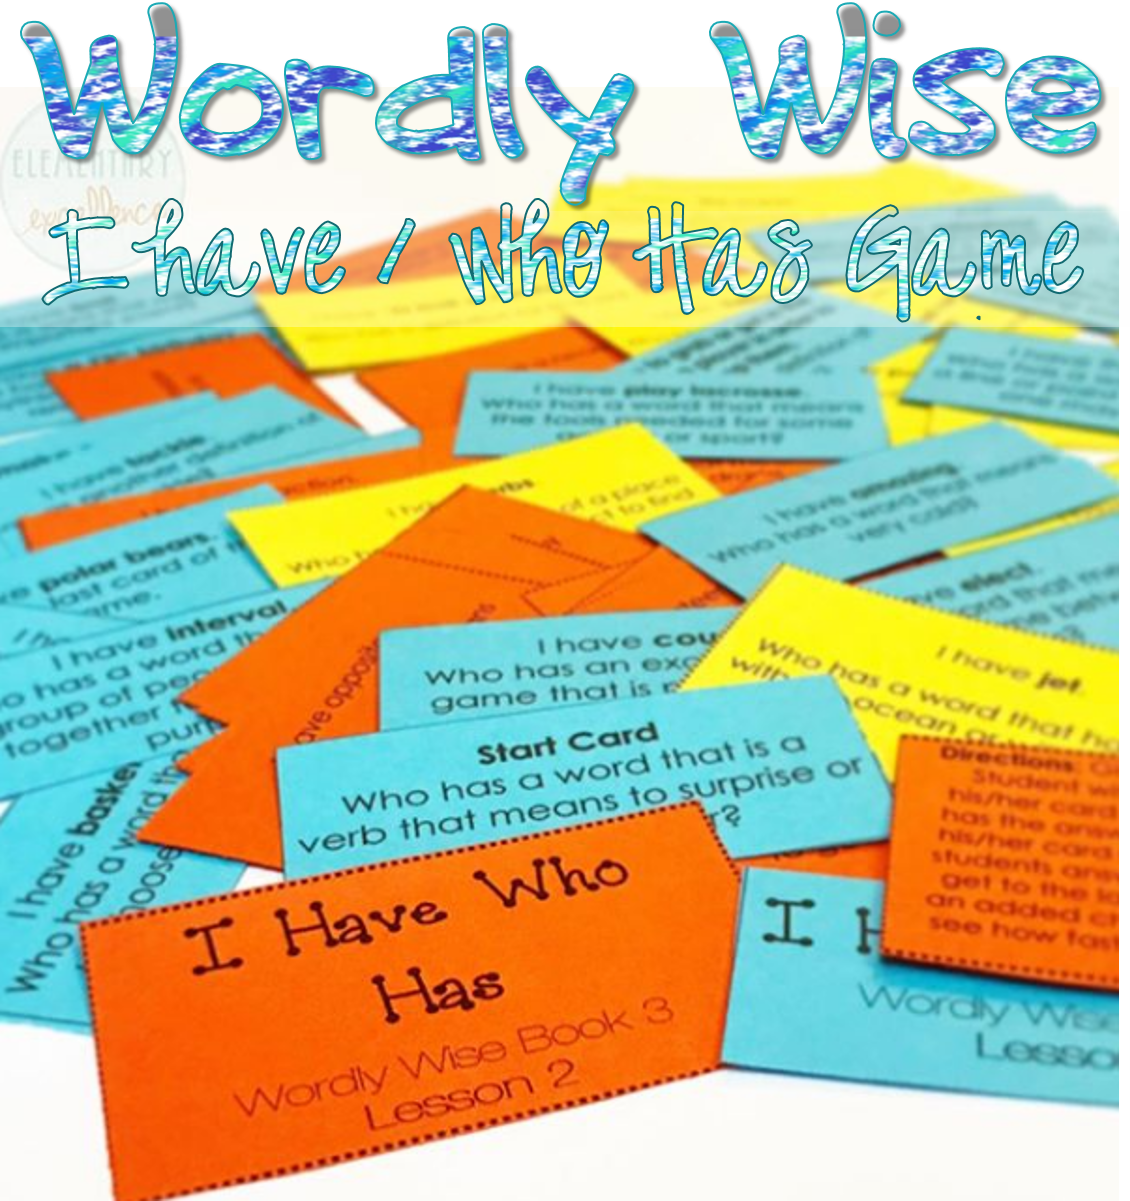 I Have Who Has Game Wordly Wise Book 3 Lesson 1